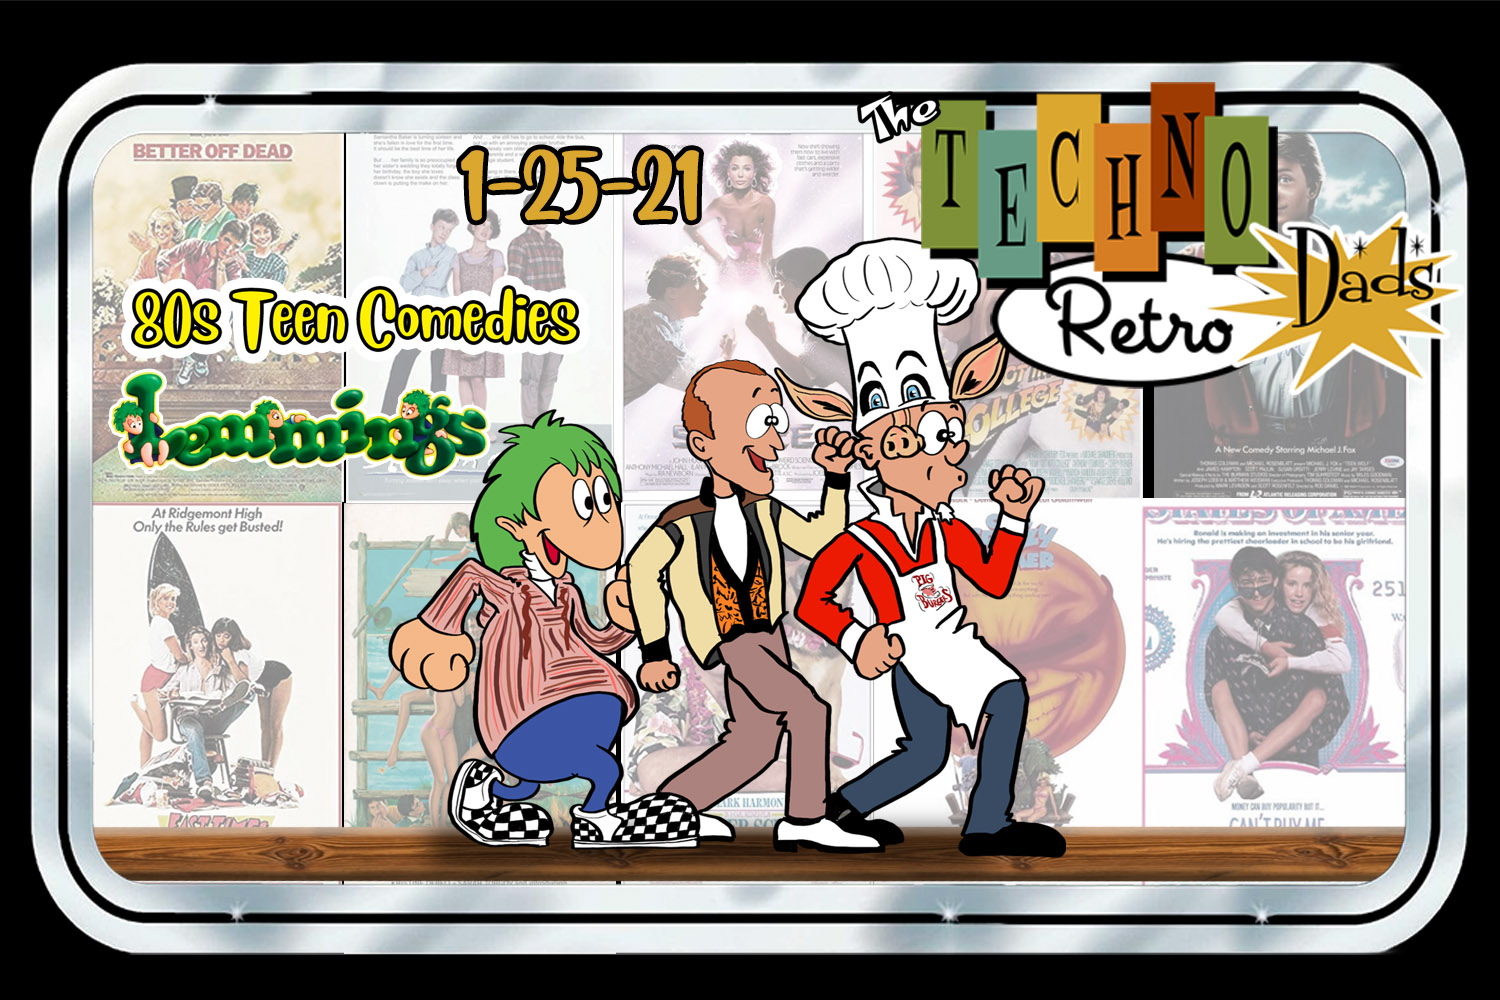 TechnoRetro Dads: Jumping Off Cliffs with 80s Teen Comedies